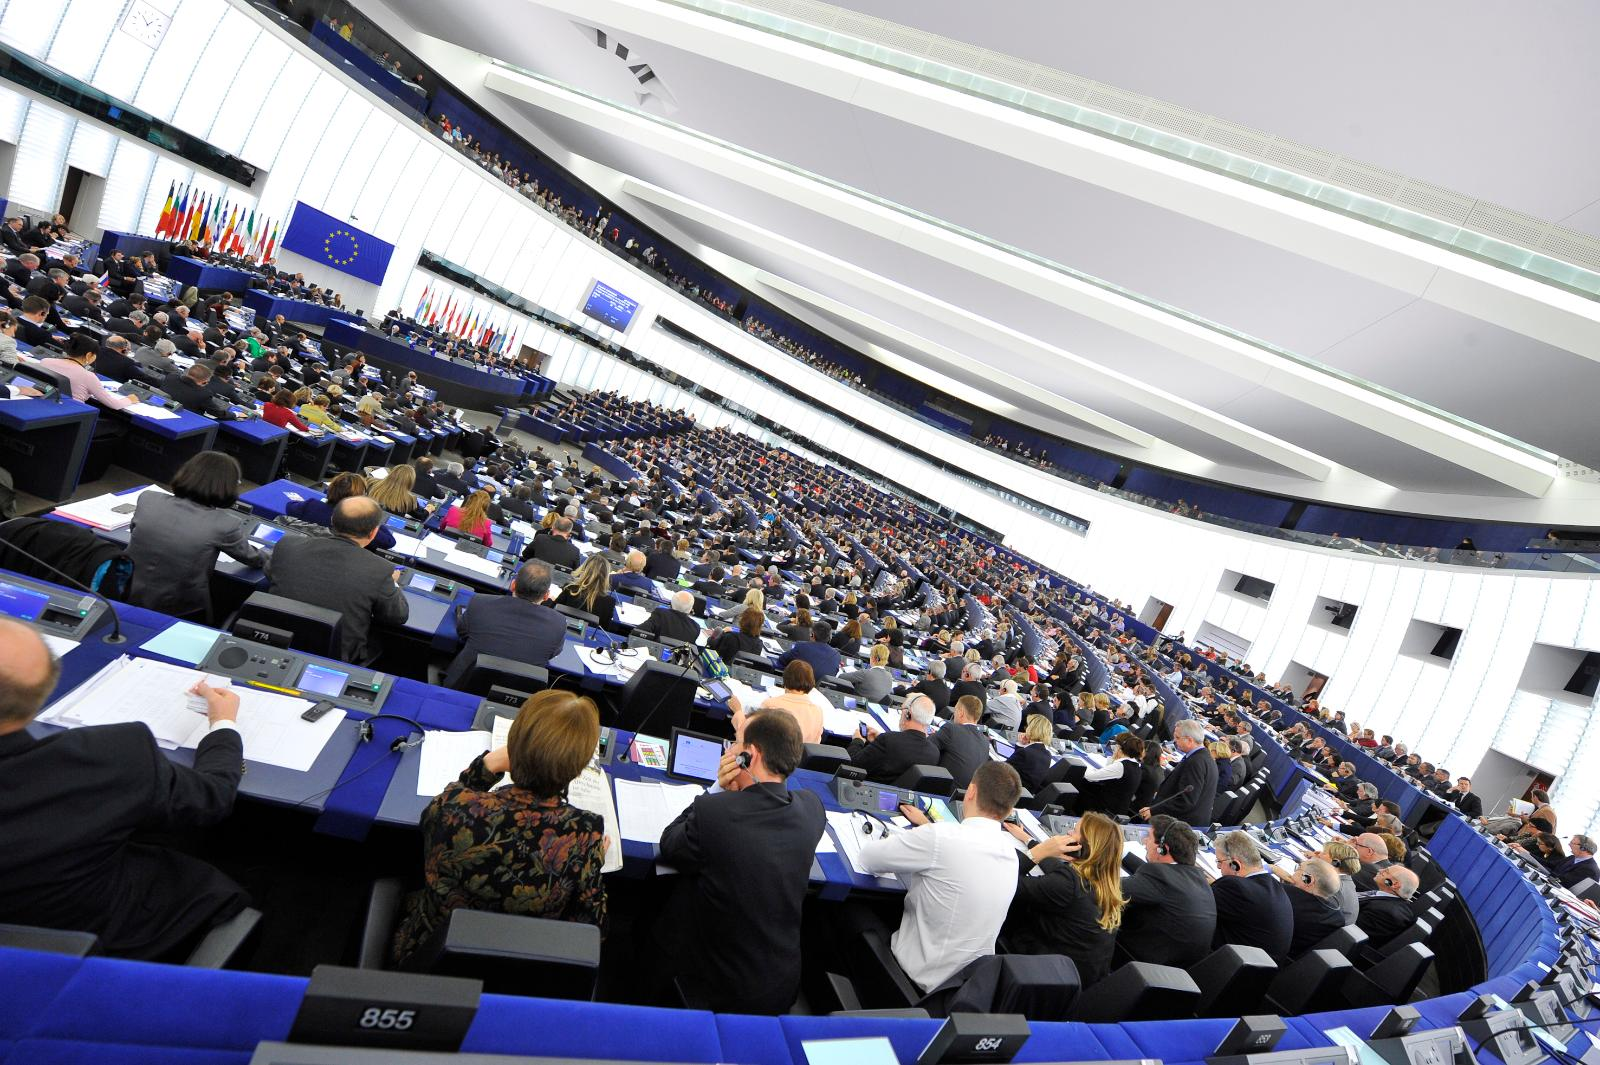 European Parliament session, Strasbourg, 16-19 January 2012